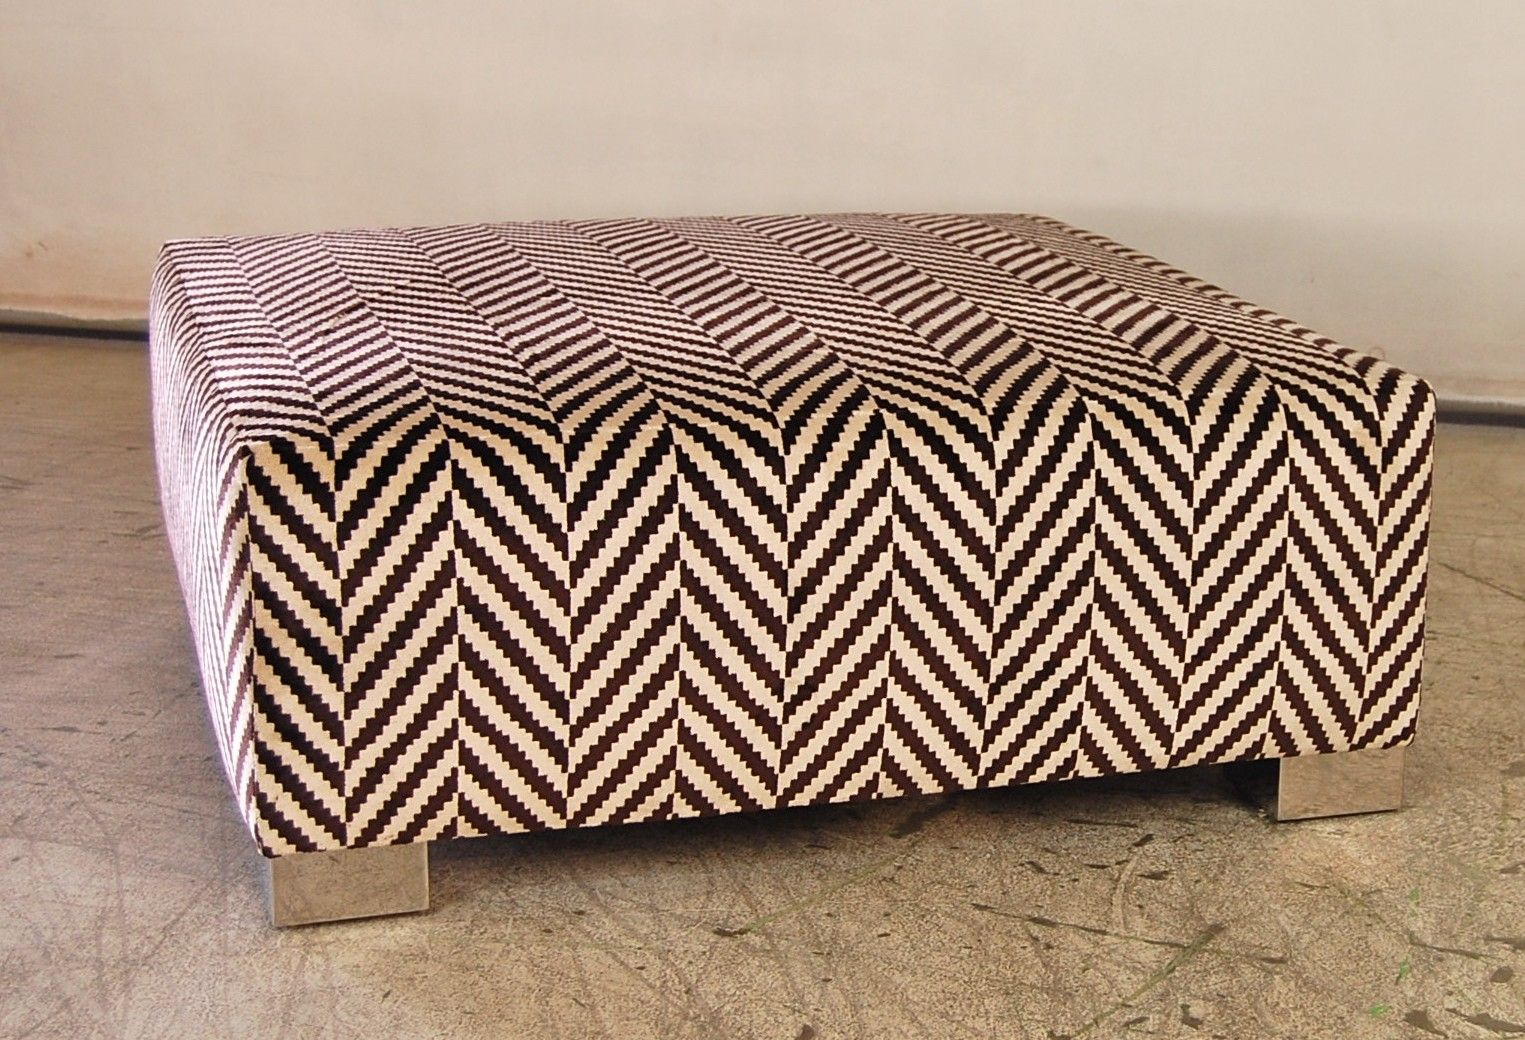 handmade contemporary ottoman by pacific mfg co  custommadecom - custom made contemporary ottoman